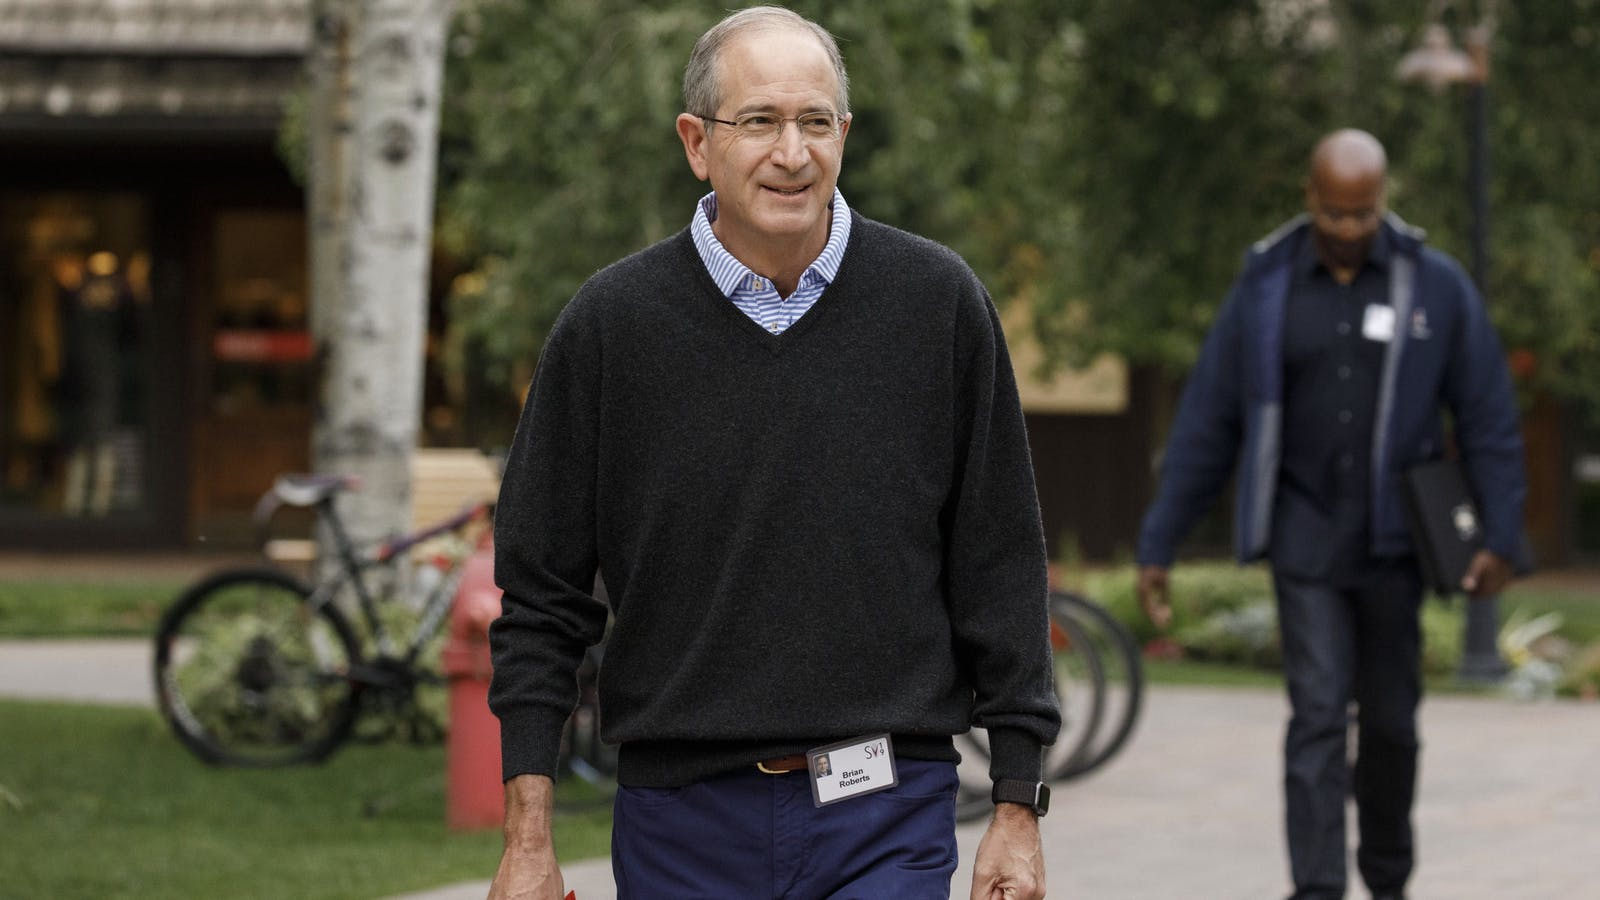 Comcast CEO Brian Roberts. Photo by Bloomberg